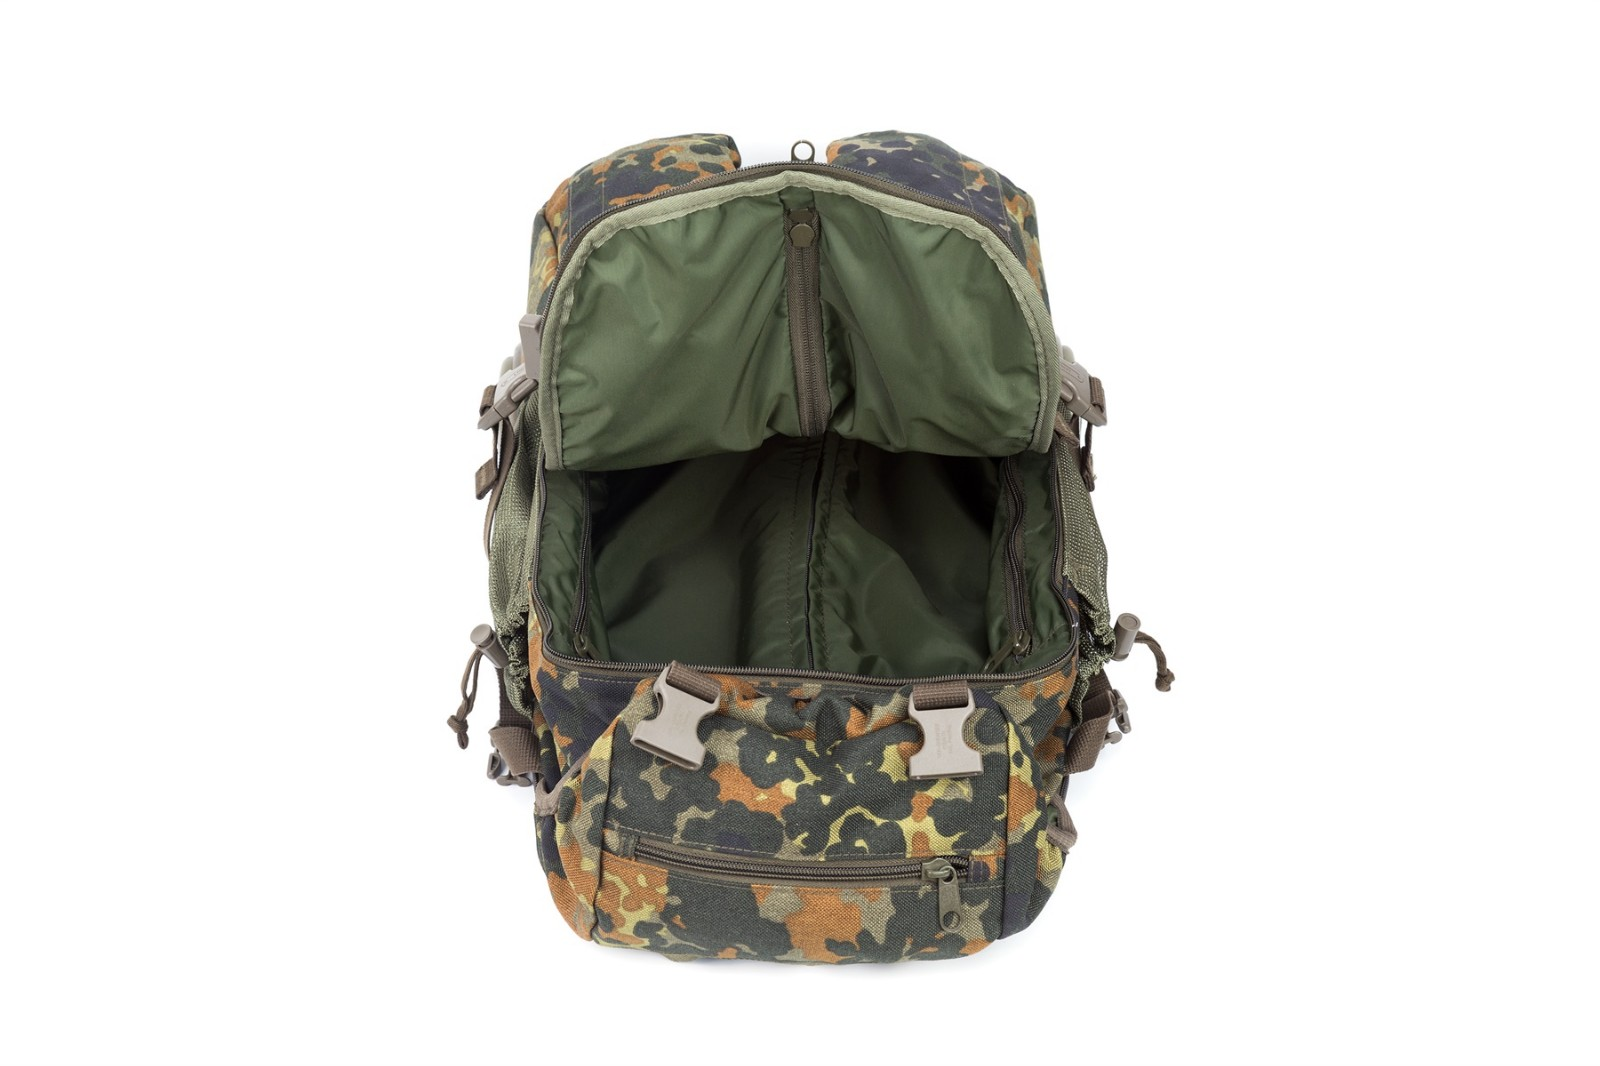 GF bags-Find Military Style Backpack Tactical Gear Backpack - GF Bags-9